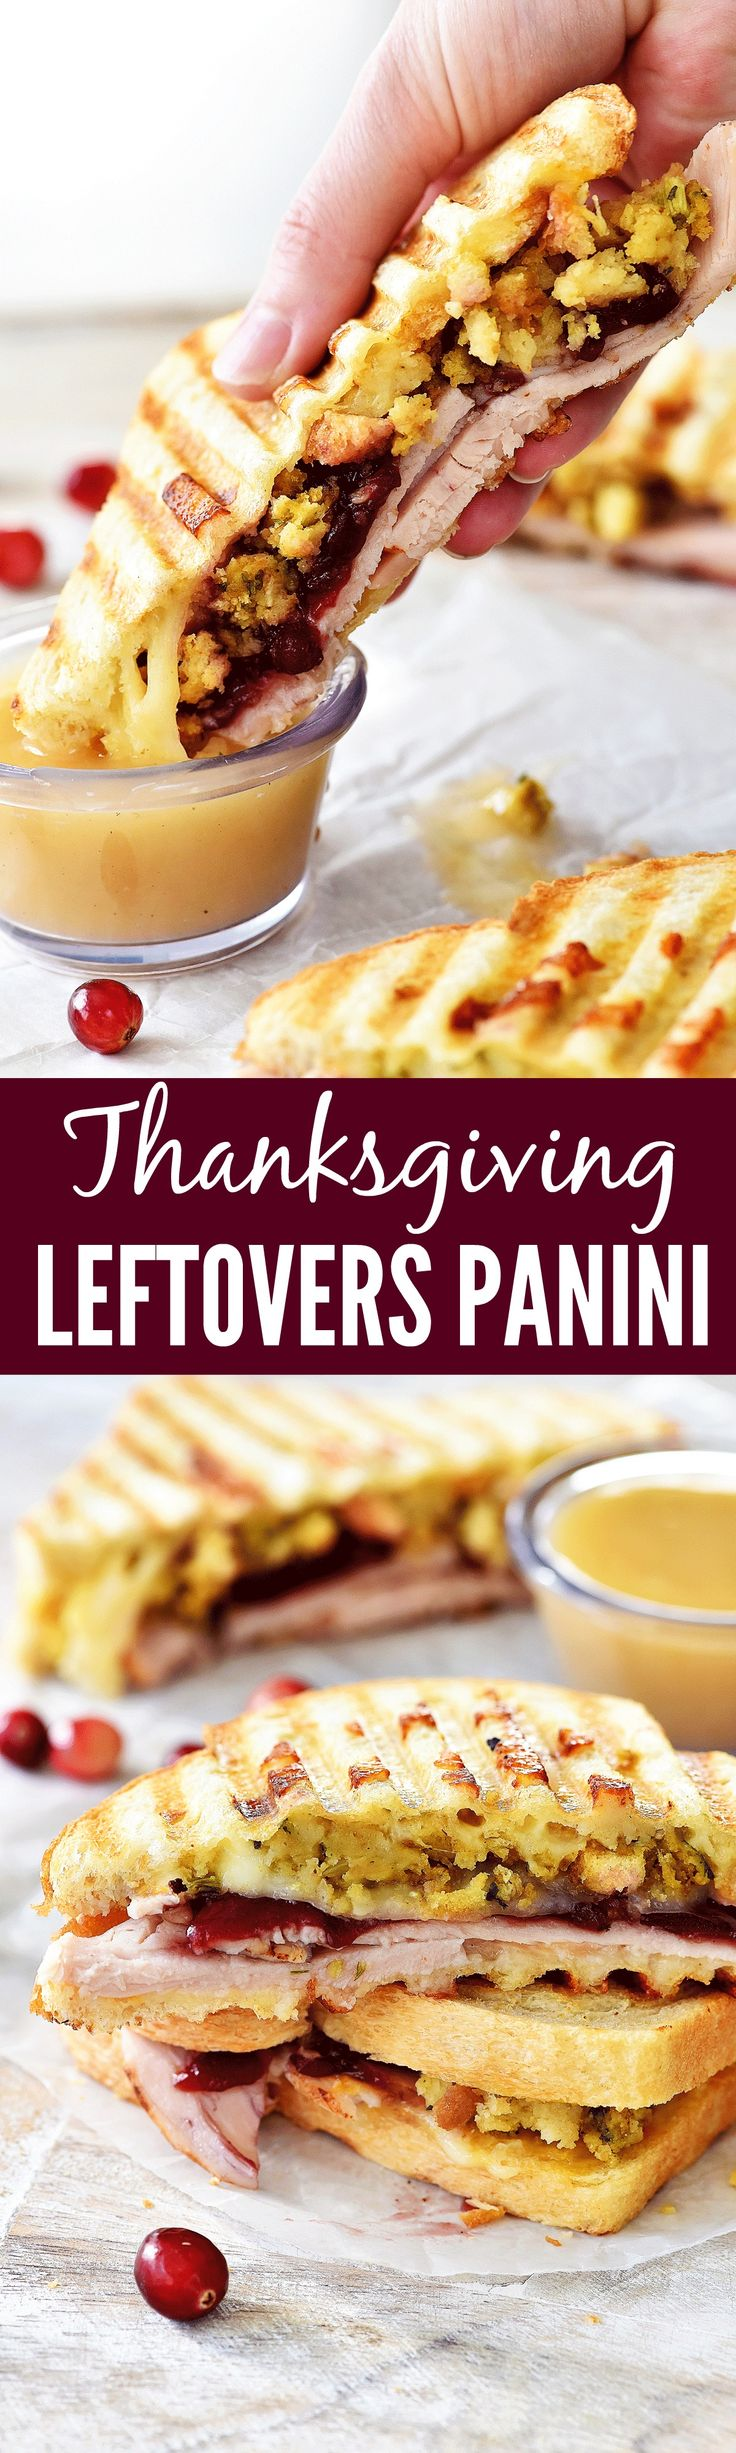 Watch 30 Genius Thanksgiving Leftover Ideas Even Martha Stewart Would be Jealous Of video